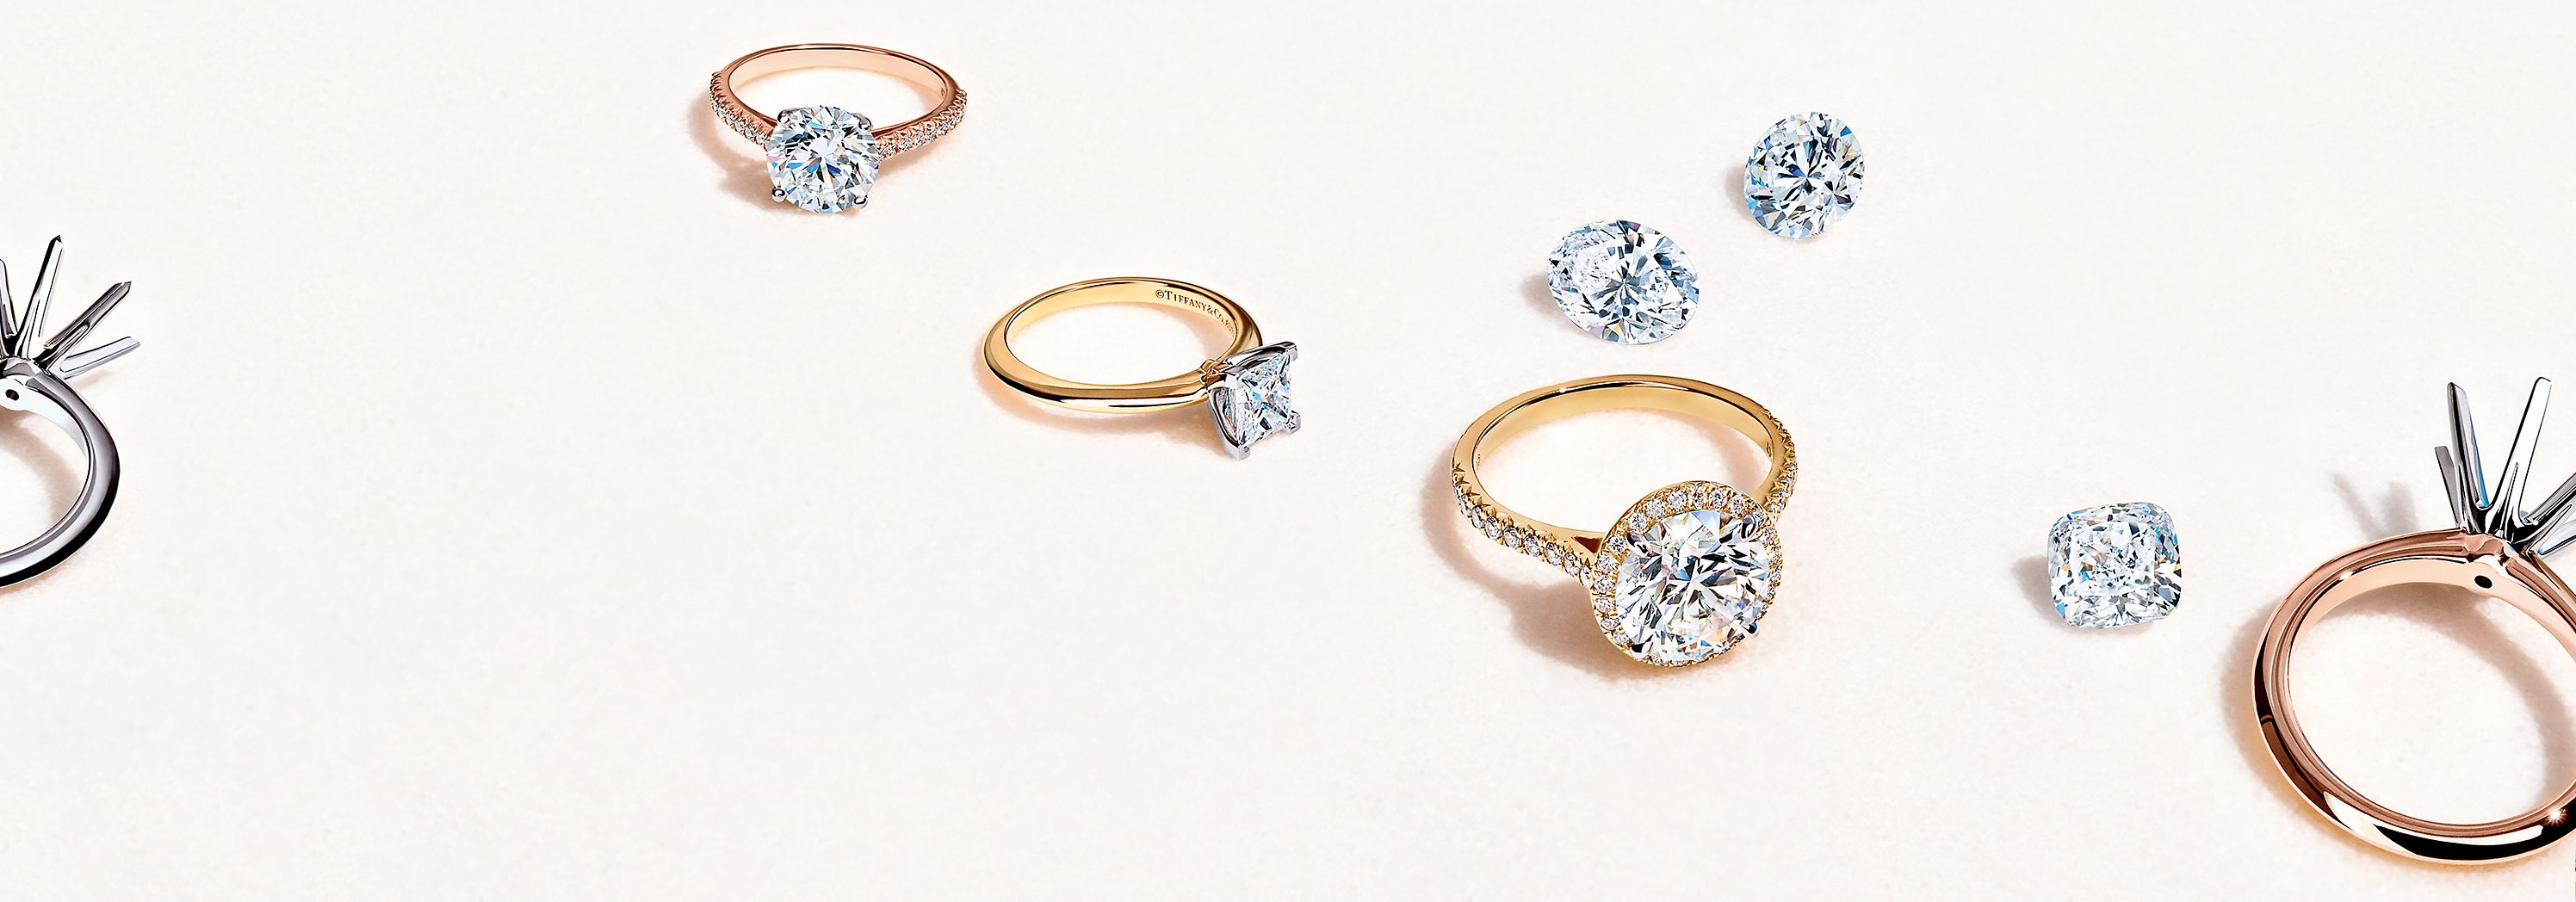 Engagement Ring Styles And Settings Tiffany Co